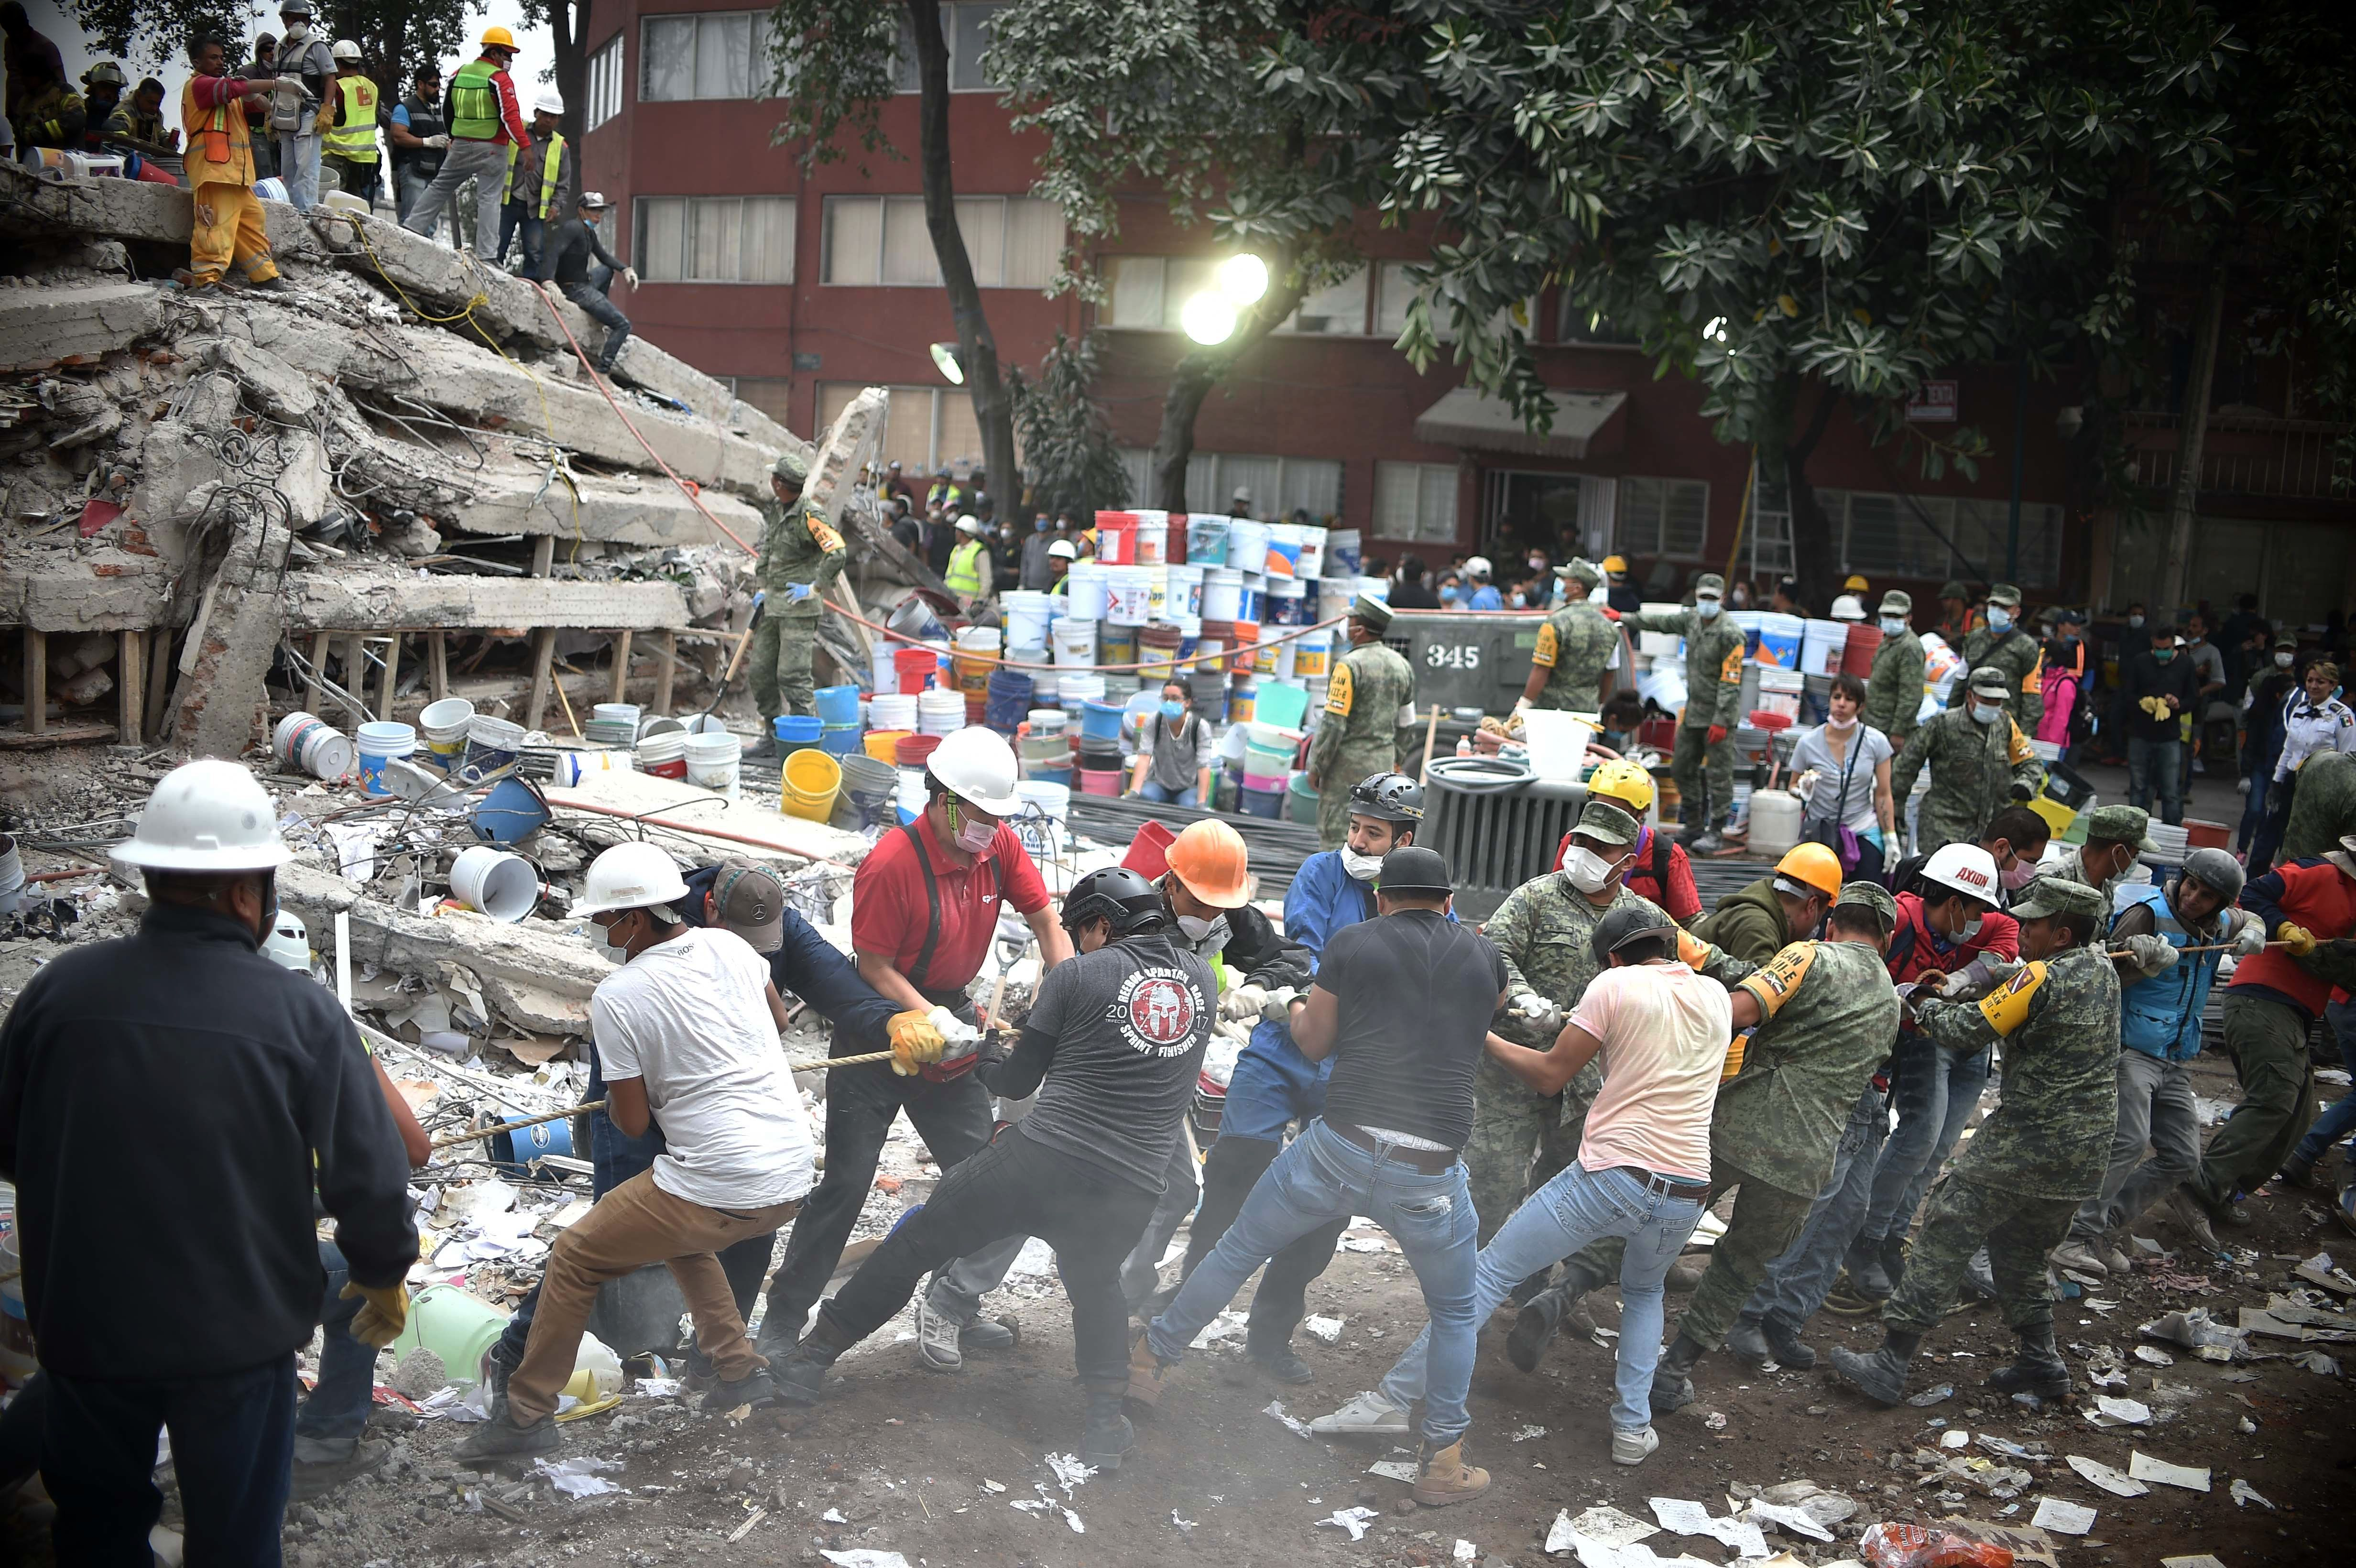 Rescuers, firefighters, policemen, soldiers and volunteers search for survivors in a flattened building in Mexico City on Sept. 20, 2017, one day after the earthquake struck the capital.